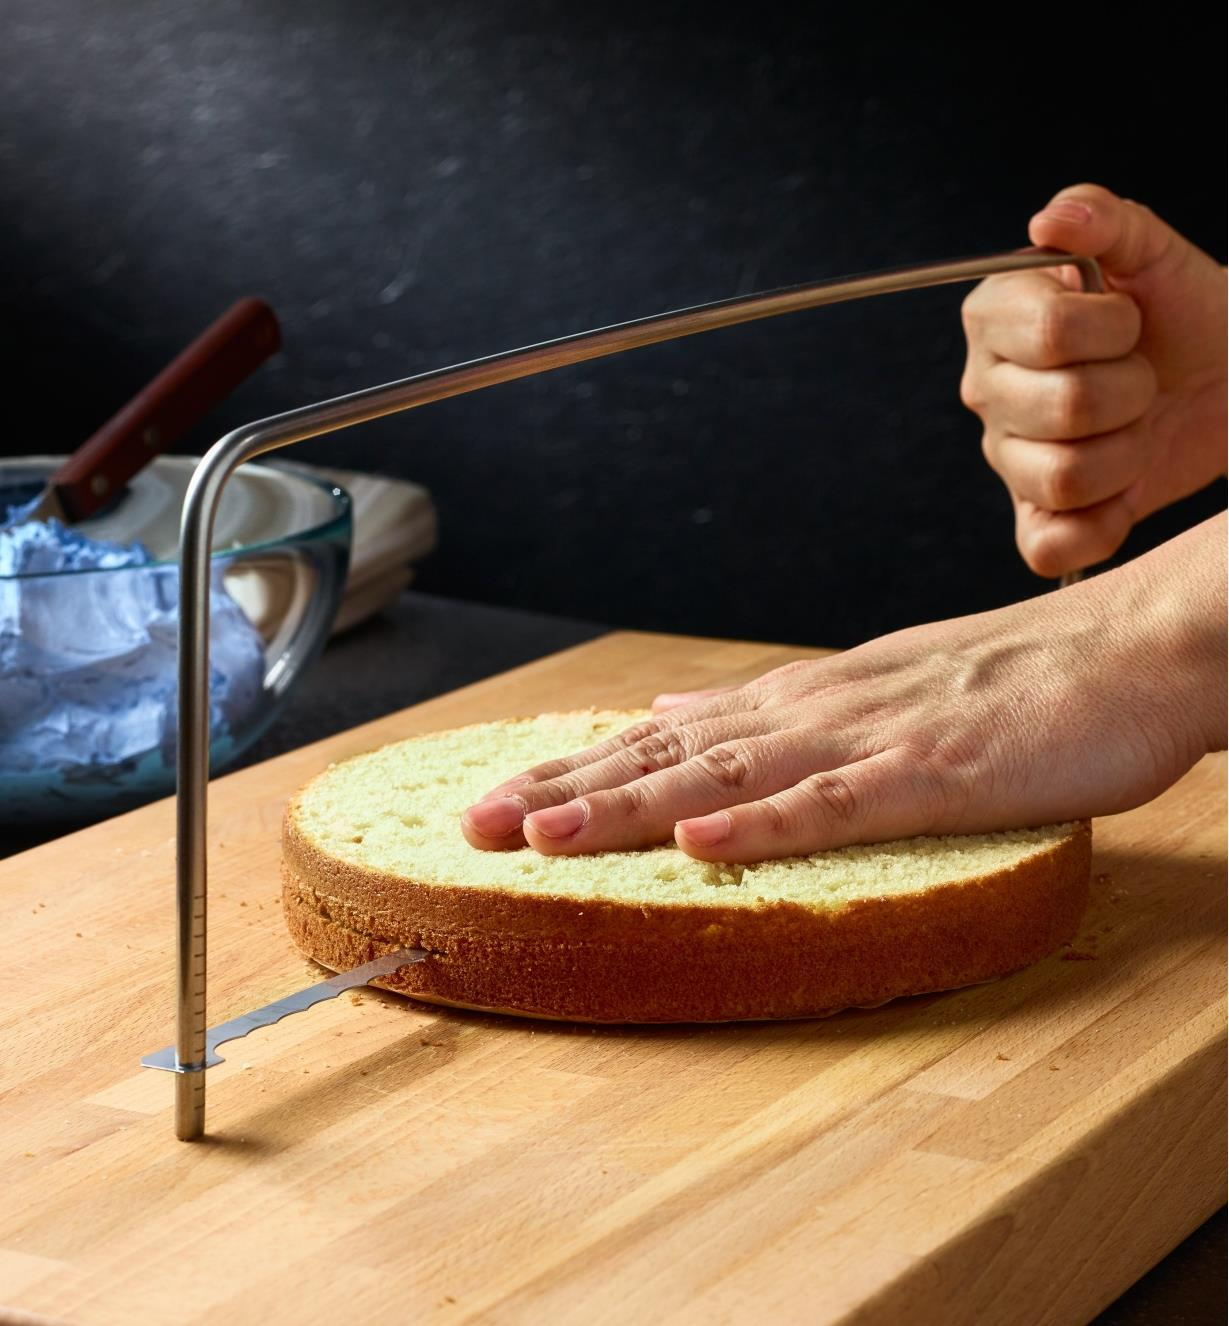 Cutting a round cake in half horizontally using the cake leveller